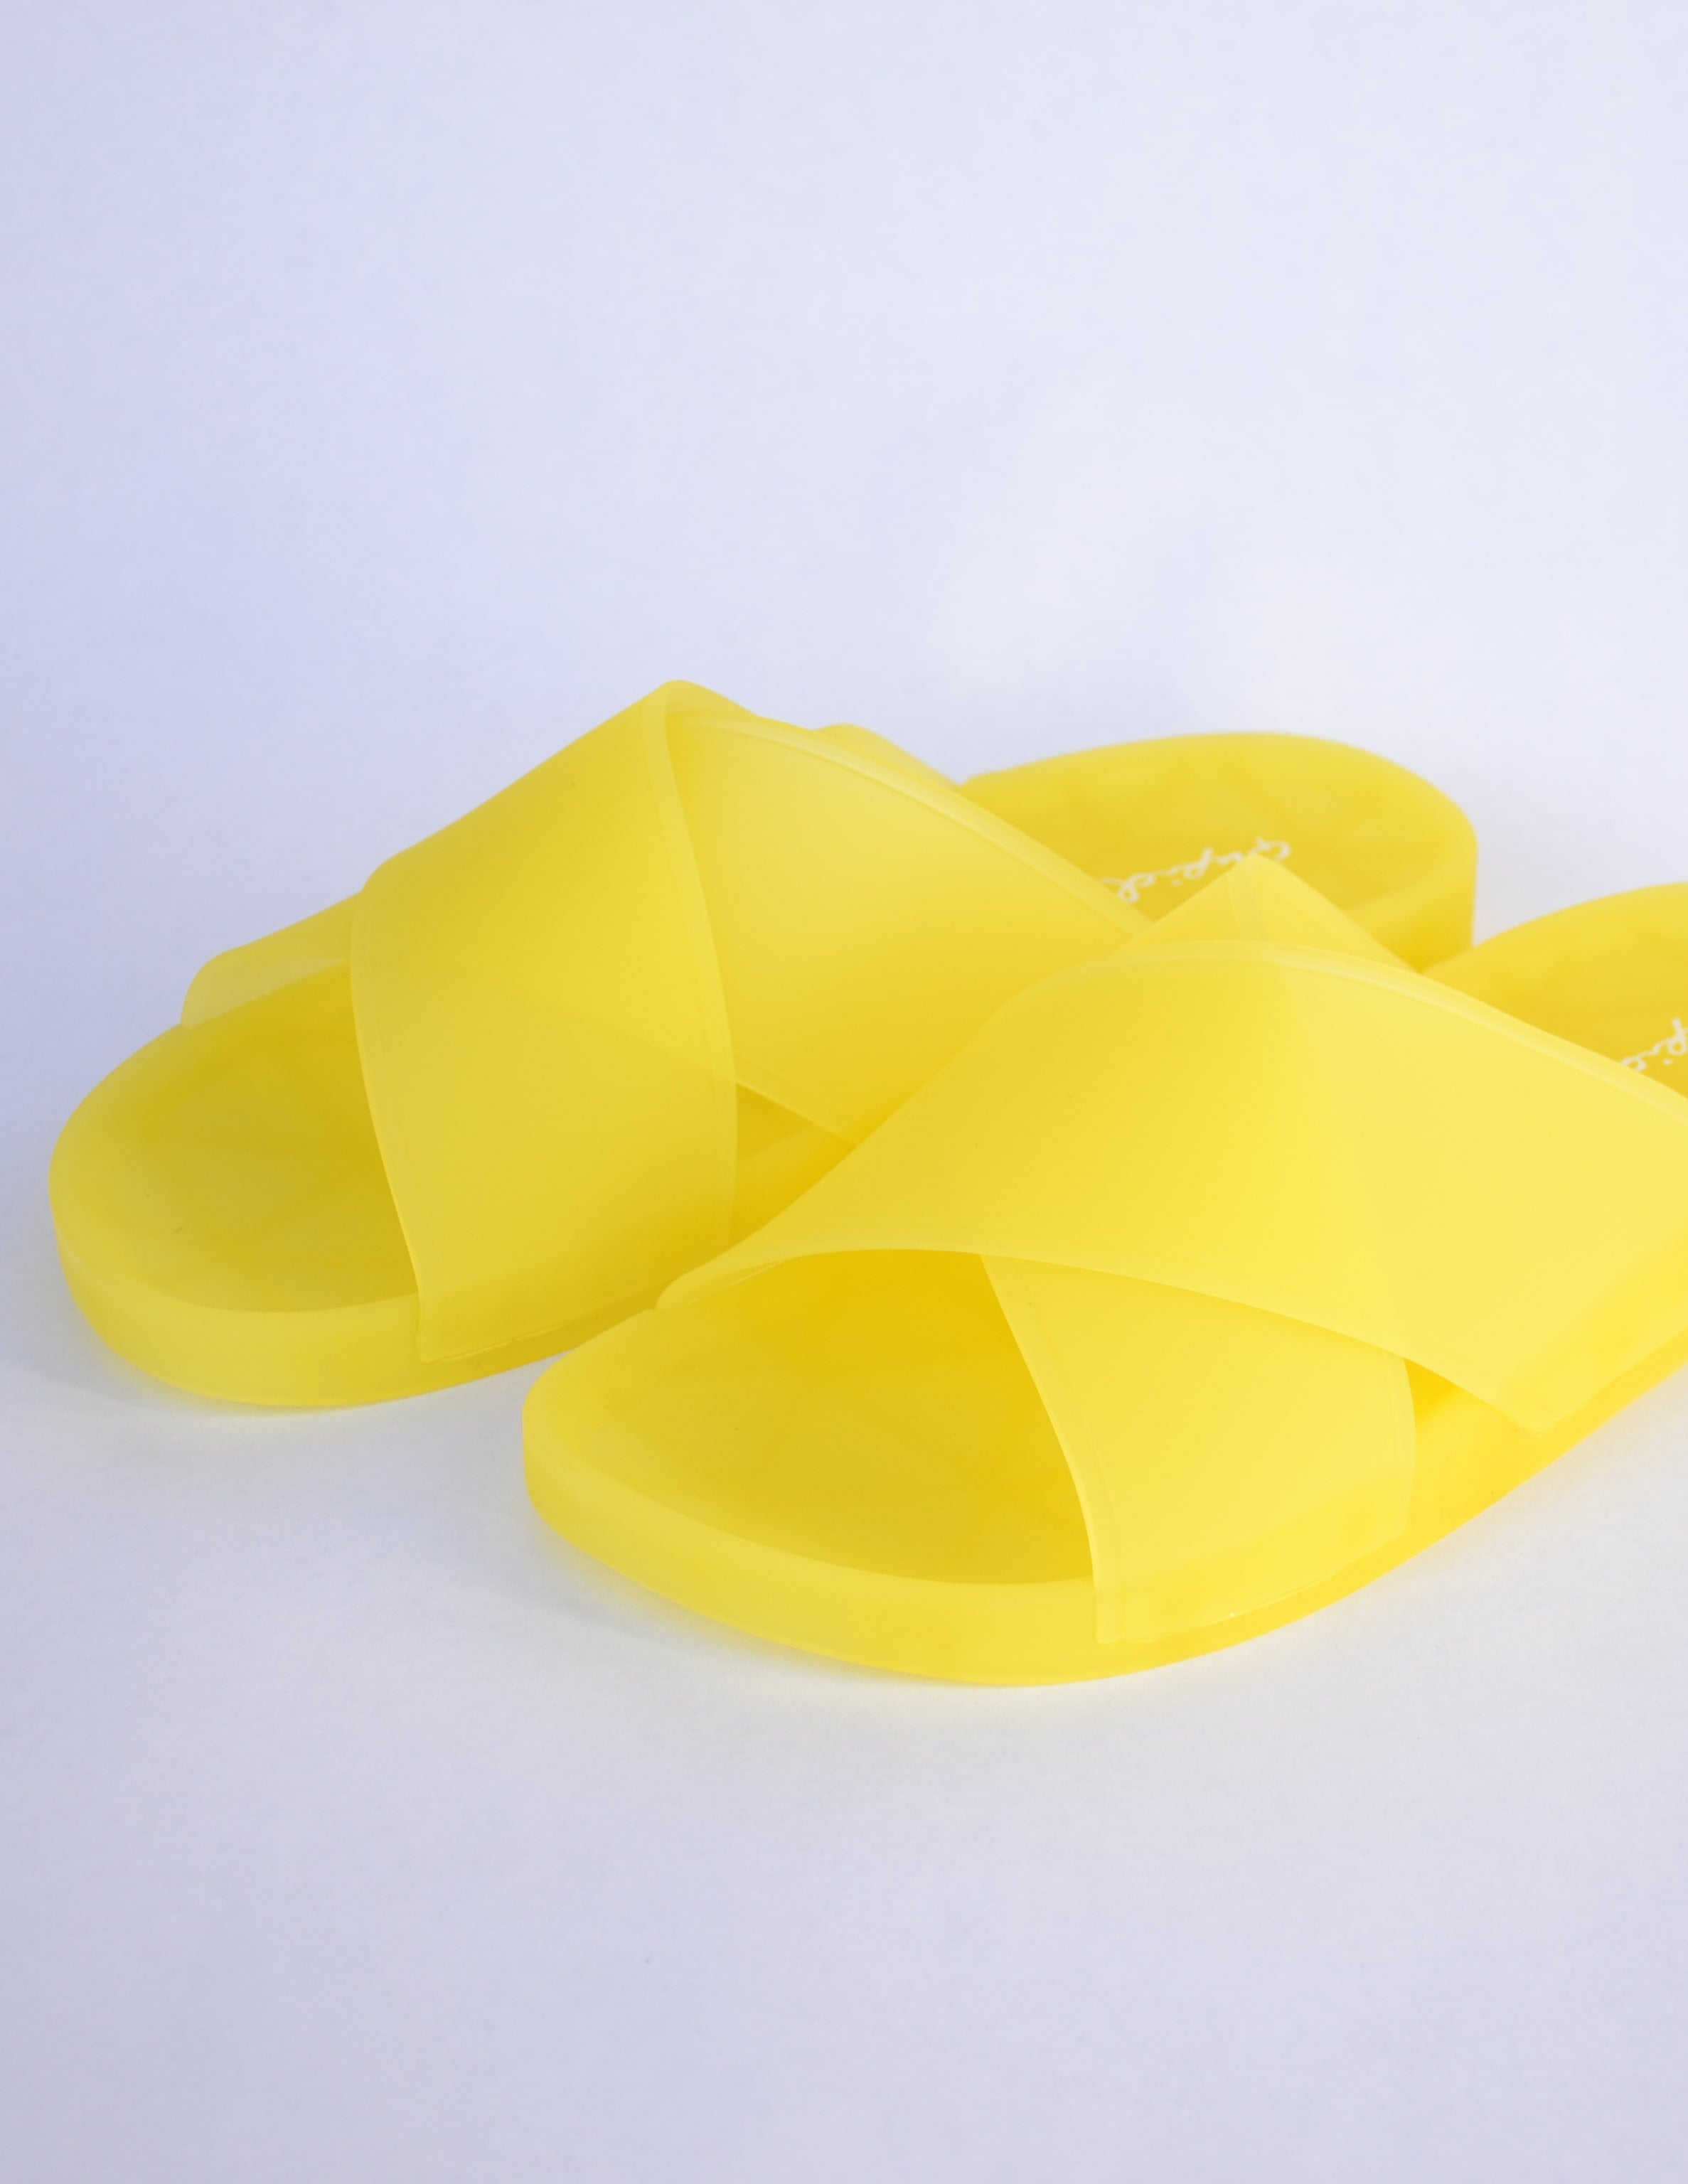 Yellow slide sandals with thick crossing straps over the top of the shoe